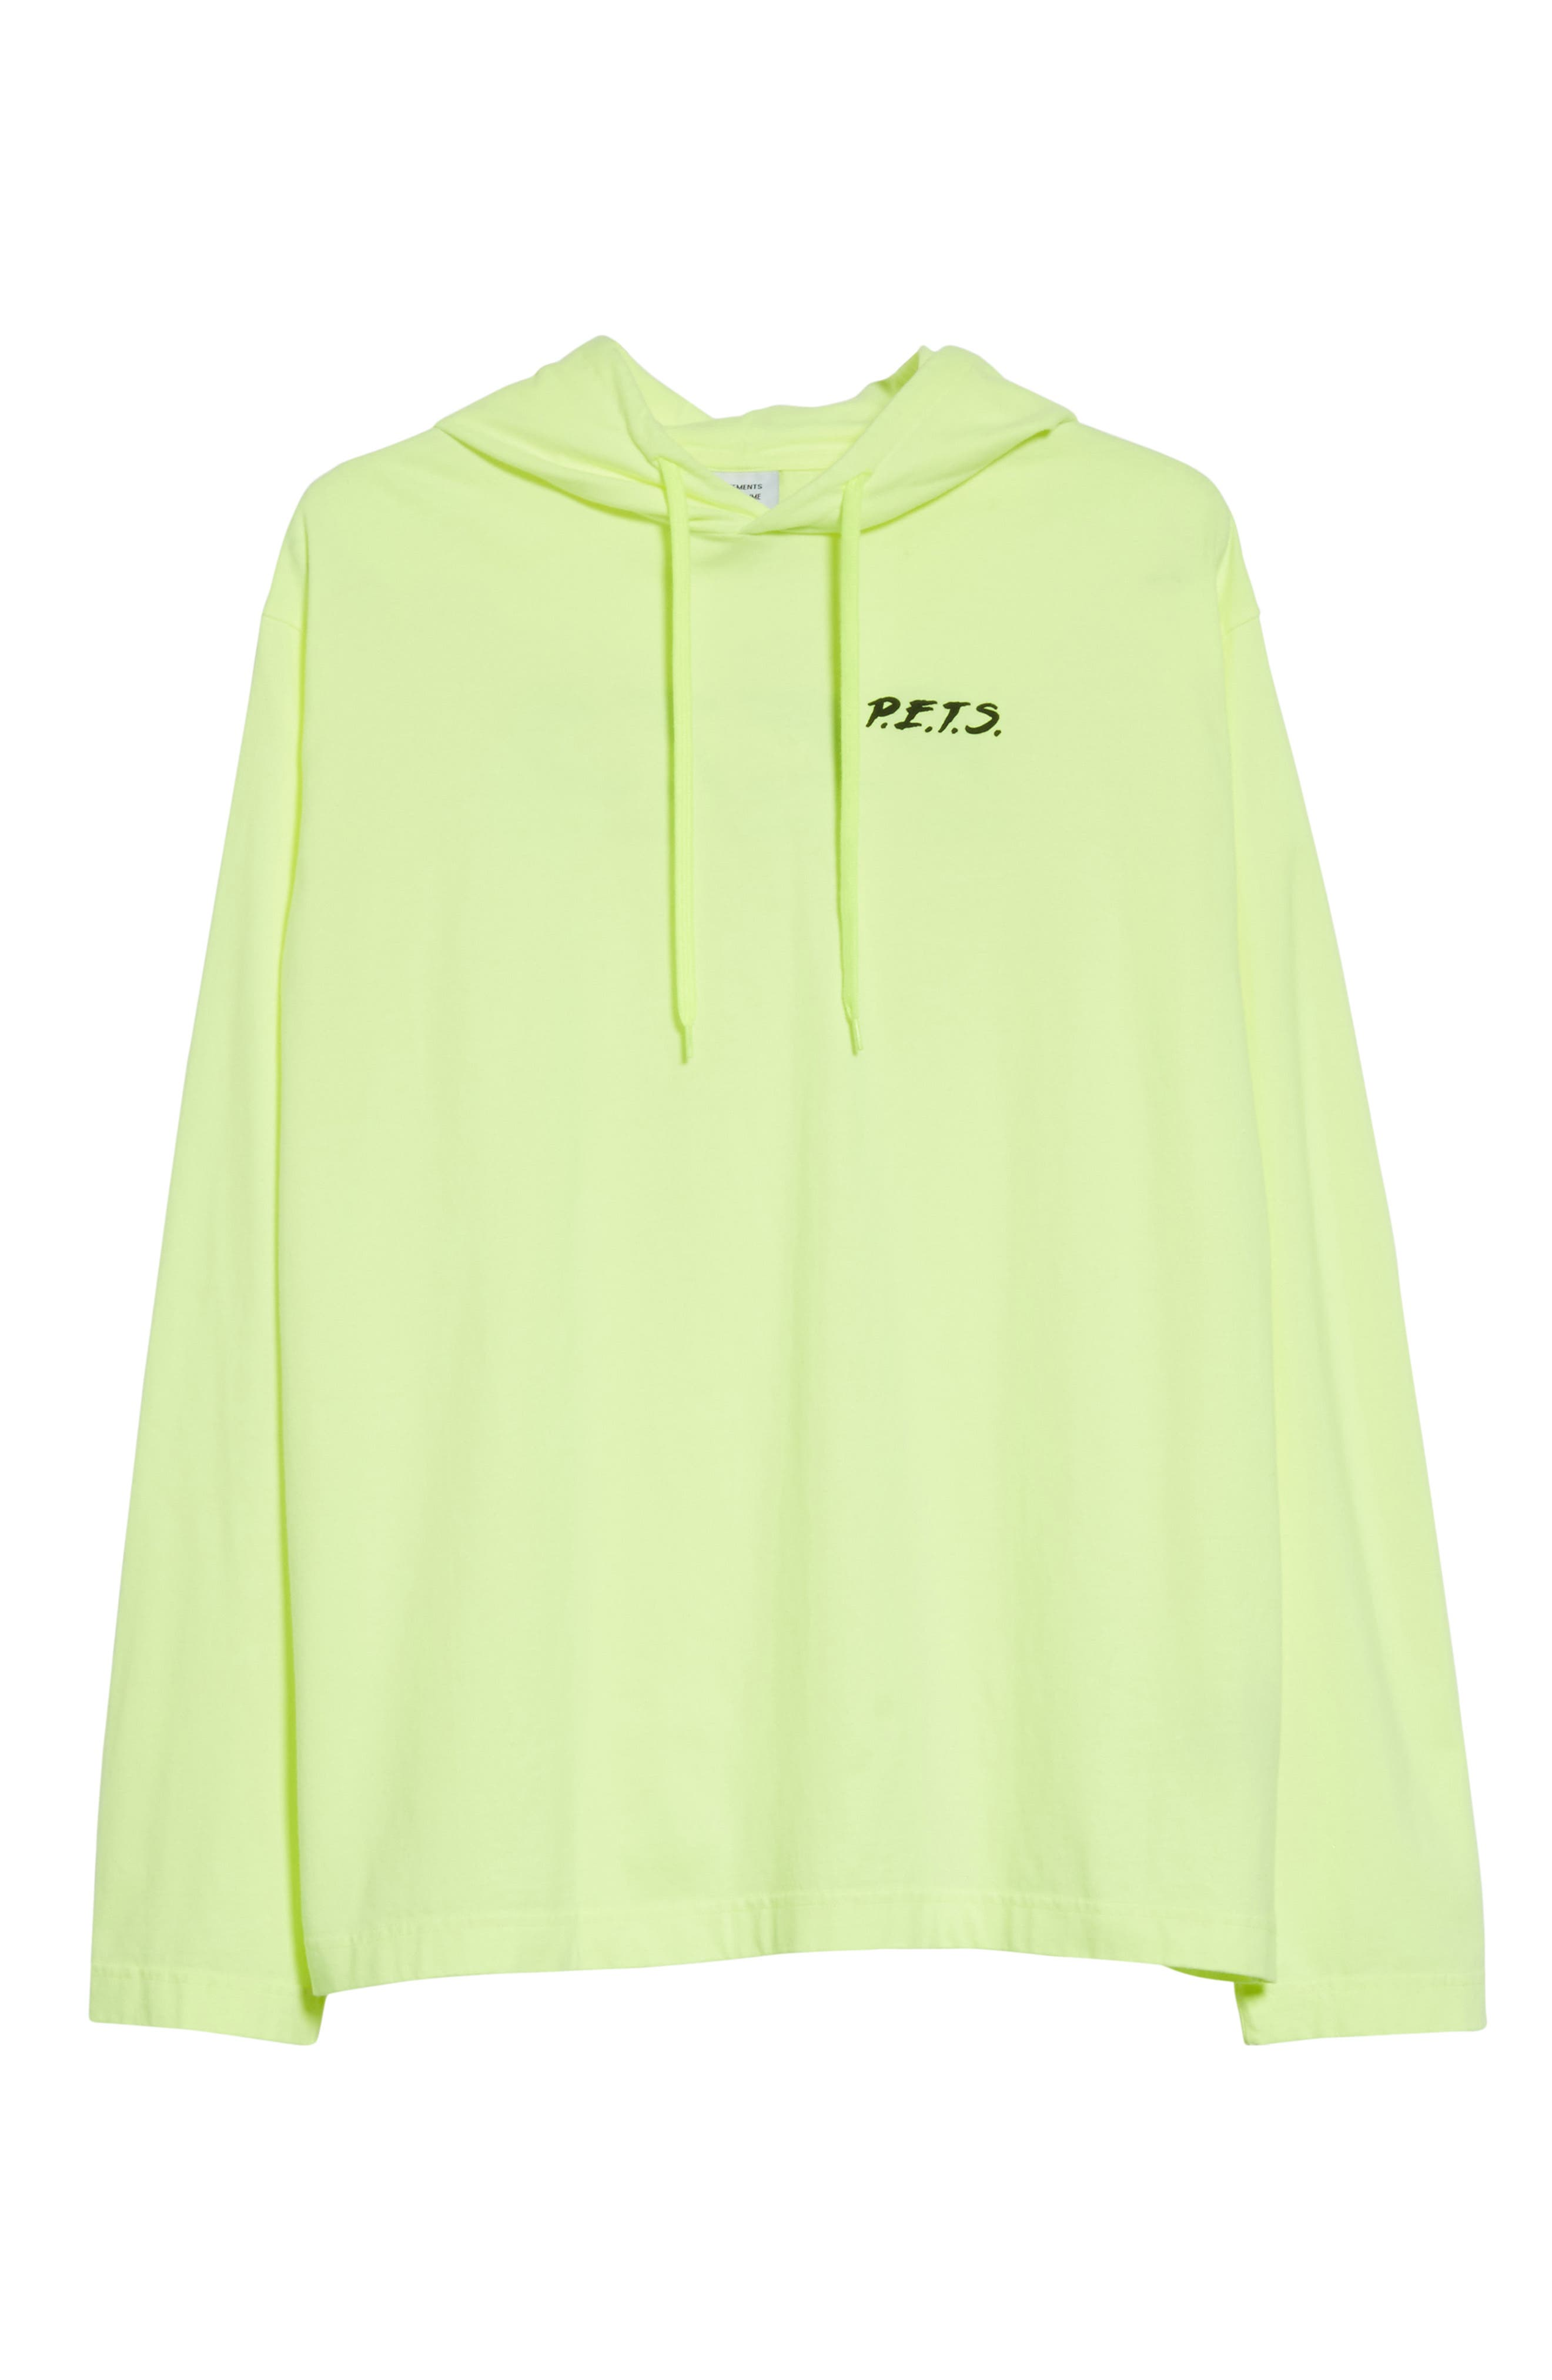 P.E.T.S. Jersey Pullover Hoodie,                             Alternate thumbnail 6, color,                             740